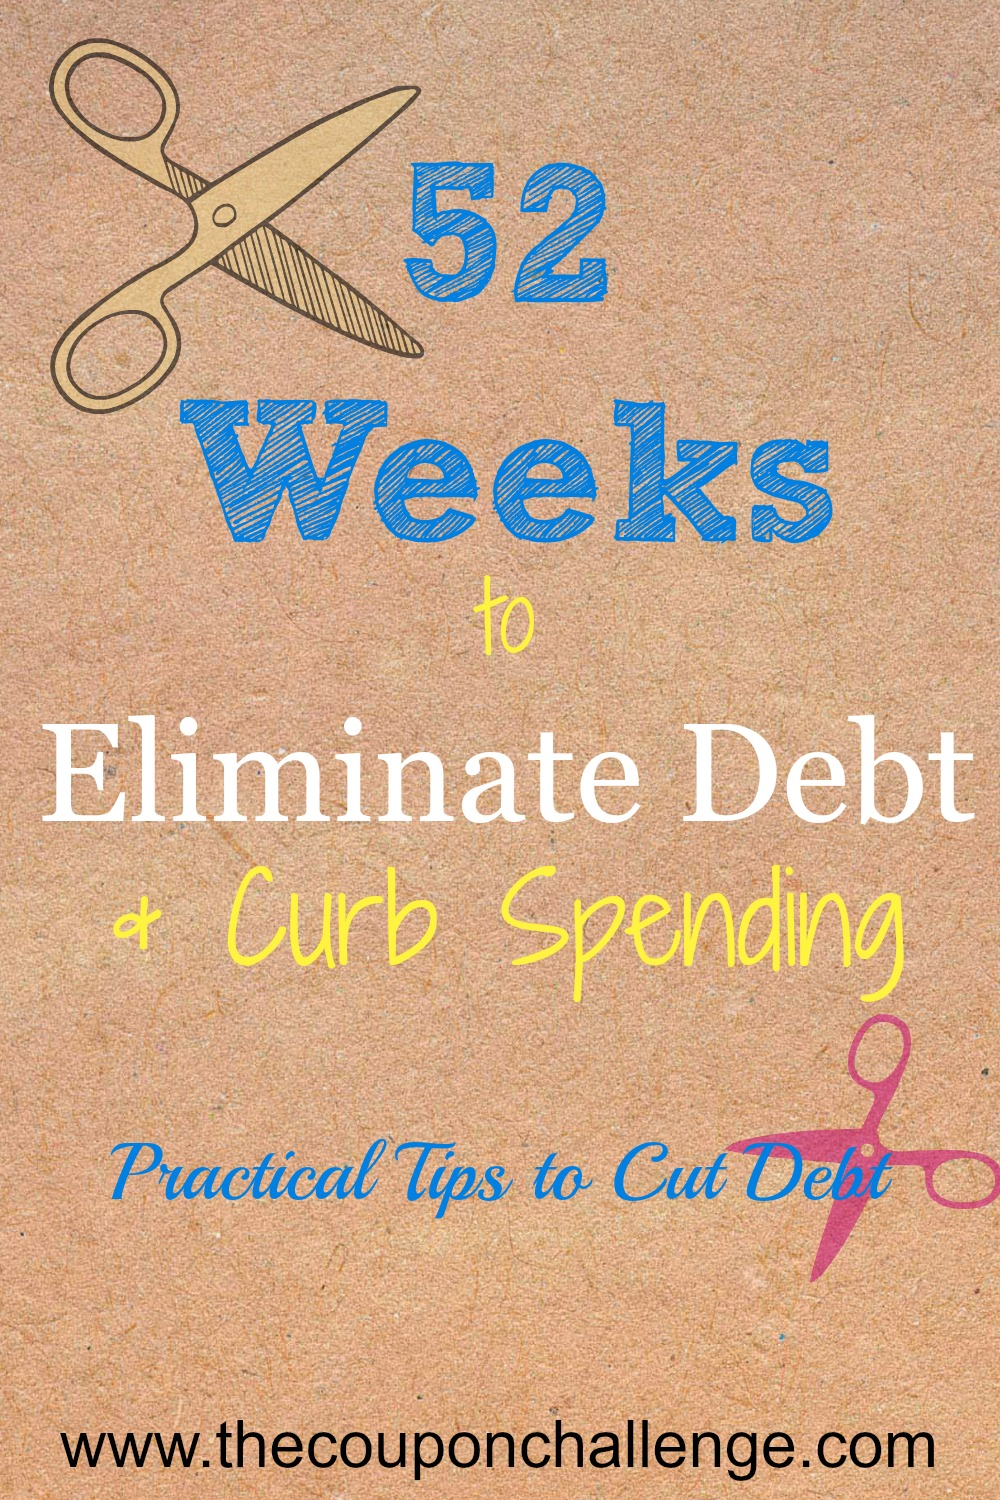 Eliminate Debt Series